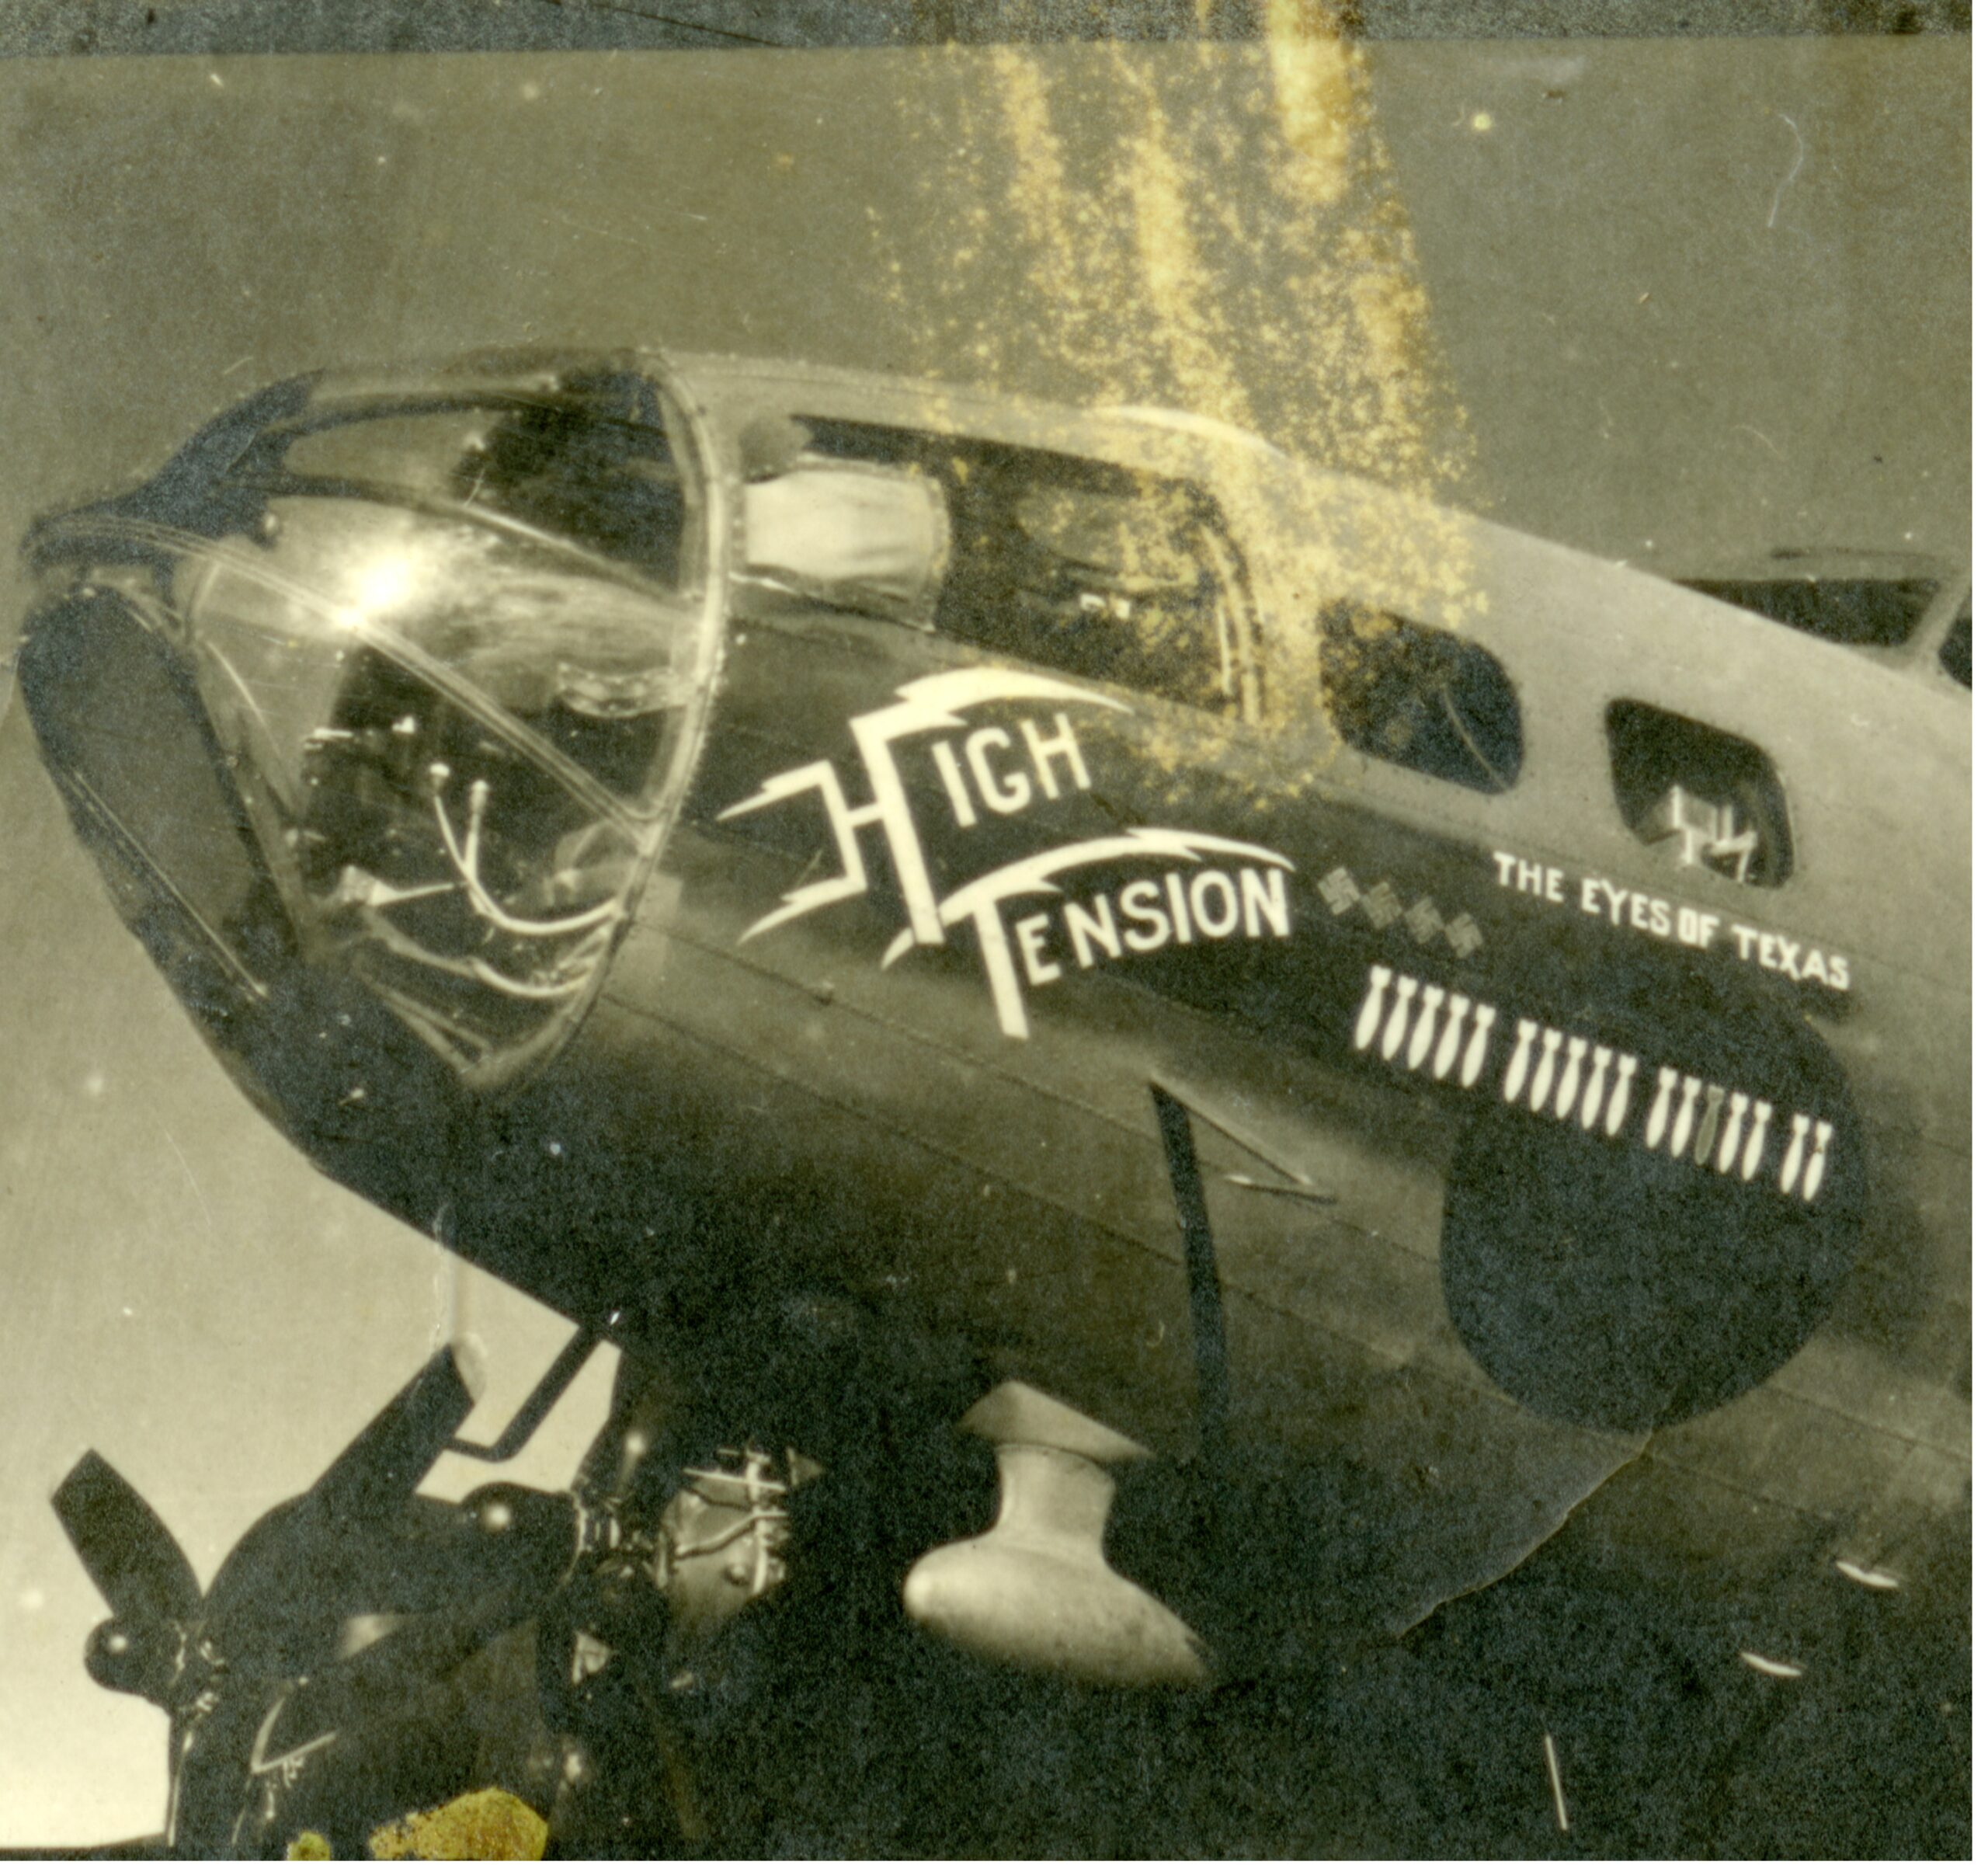 The B-17 Flying Fortress 'High Tension,' also known as 'The Eyes of Texas.'